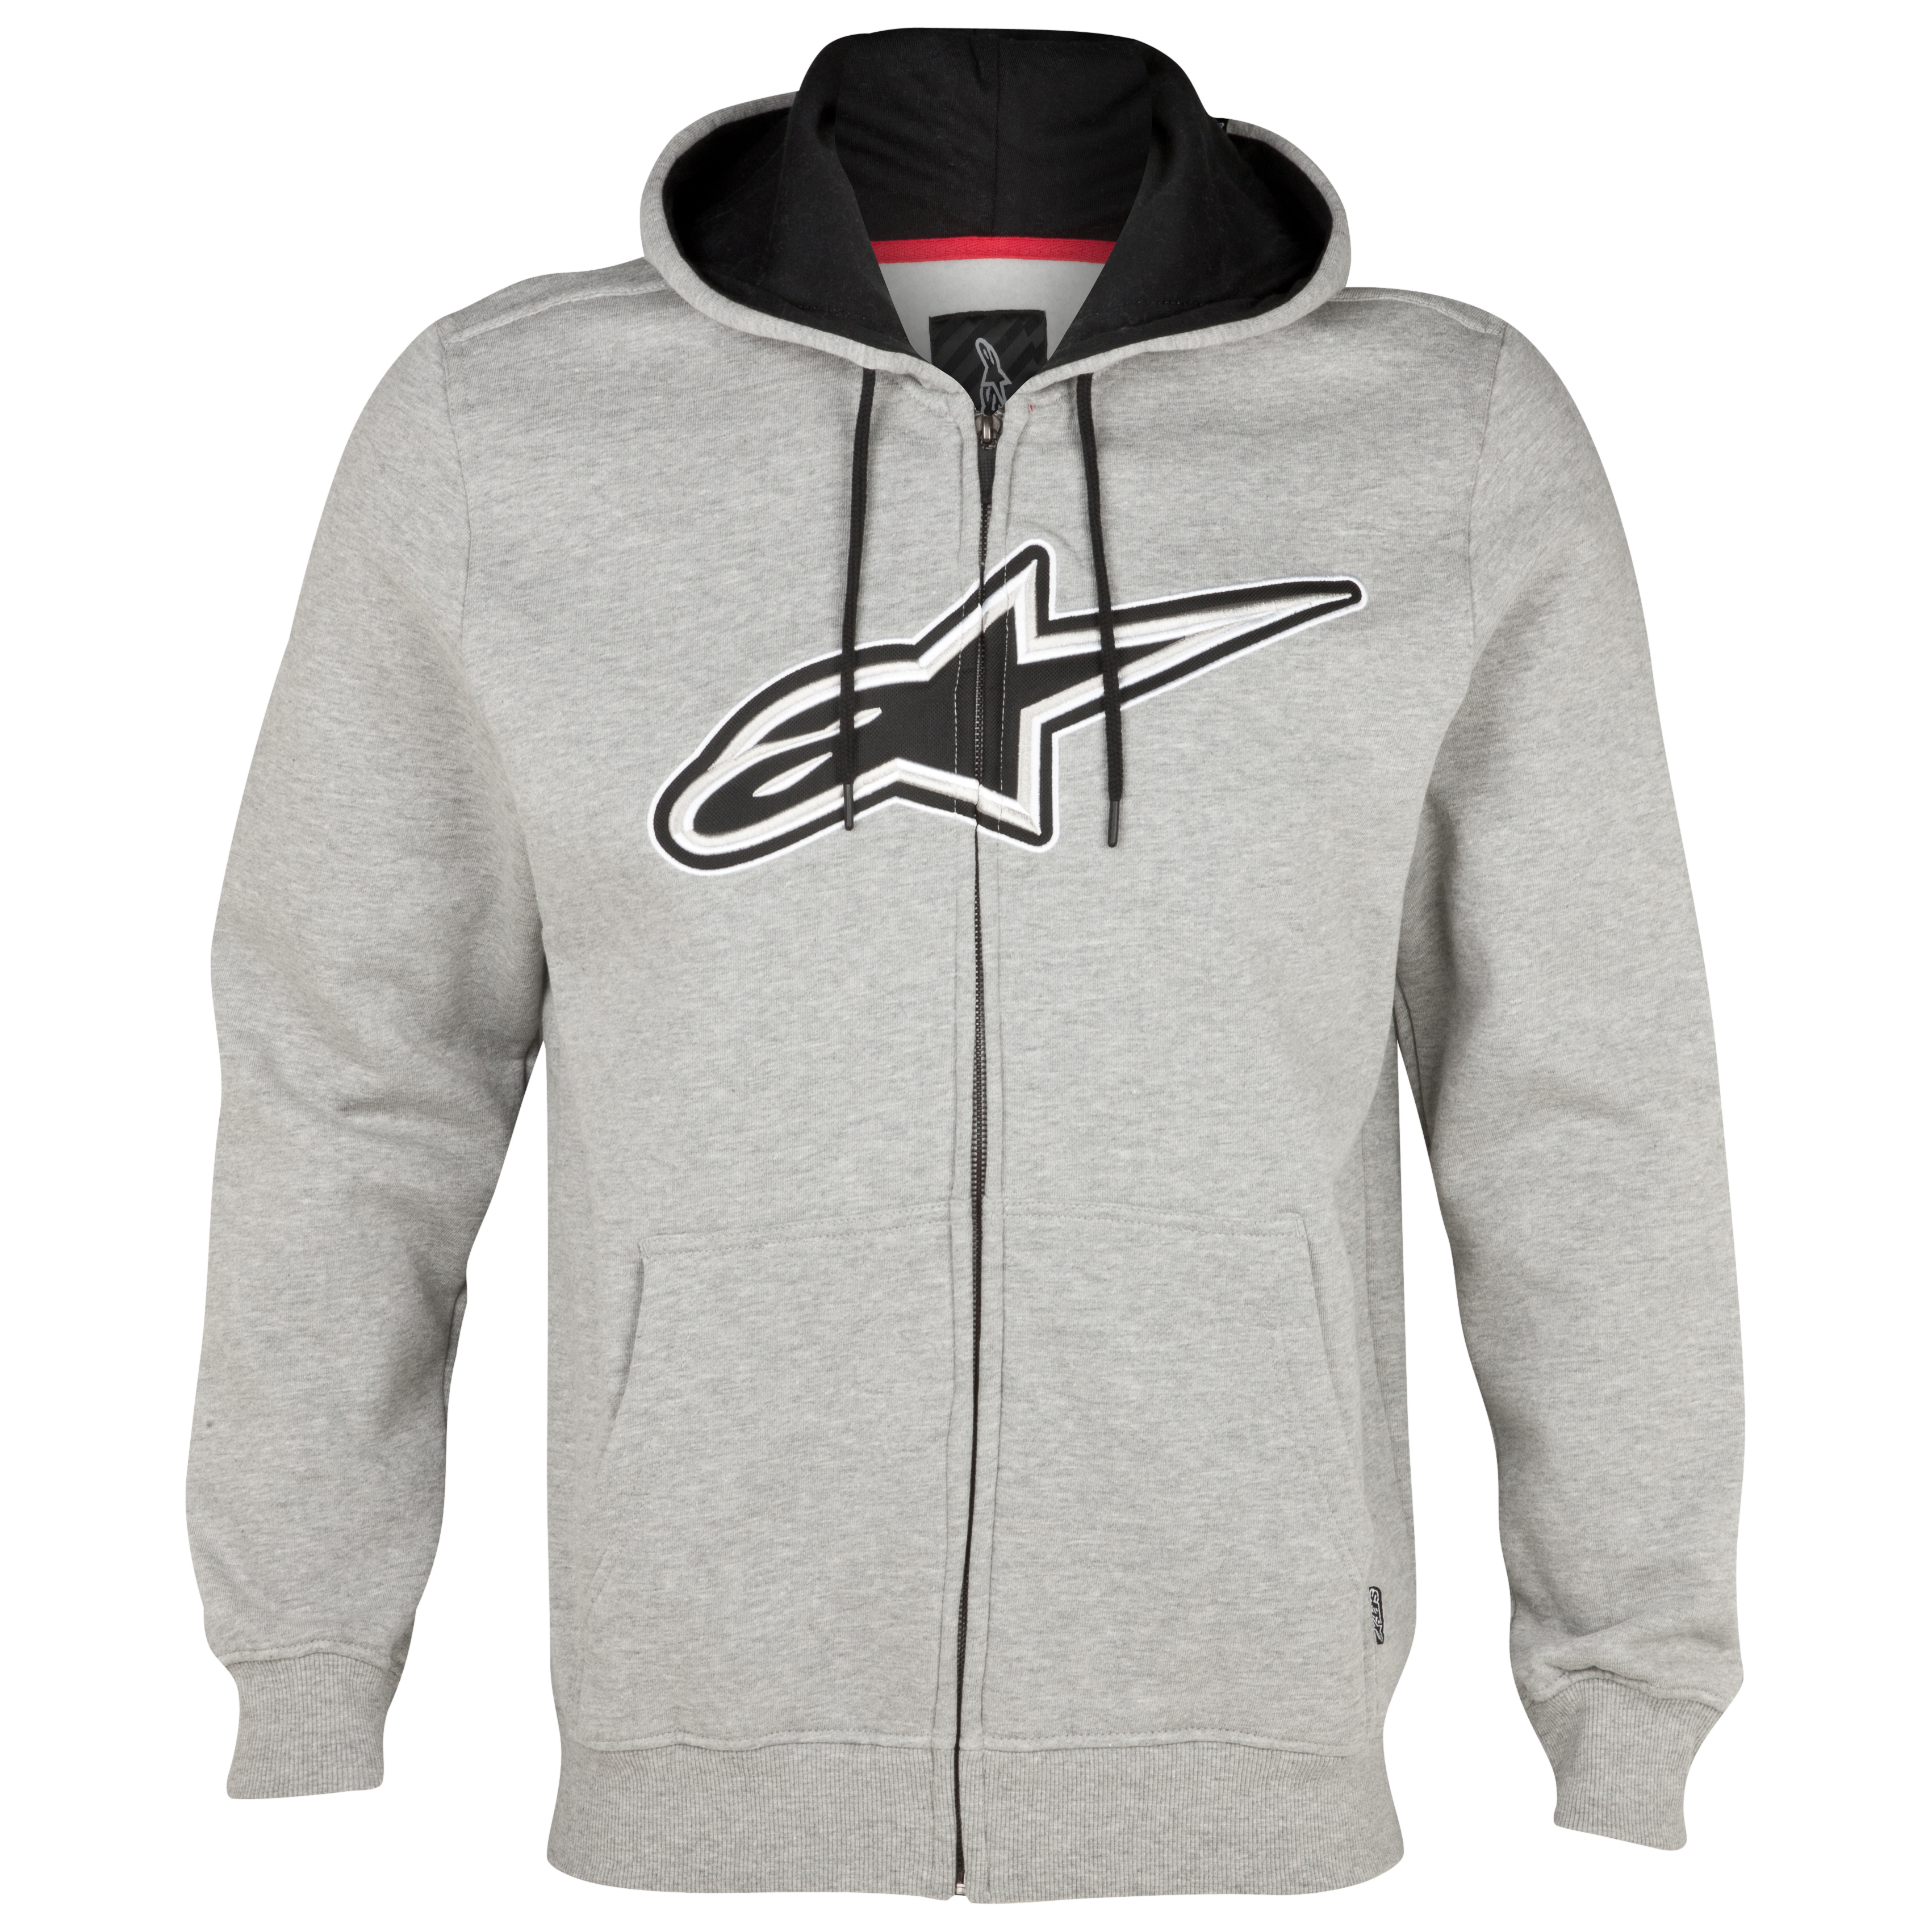 Alpinestar Alpinestars Destroyer Zip Fleece - Heather Grey